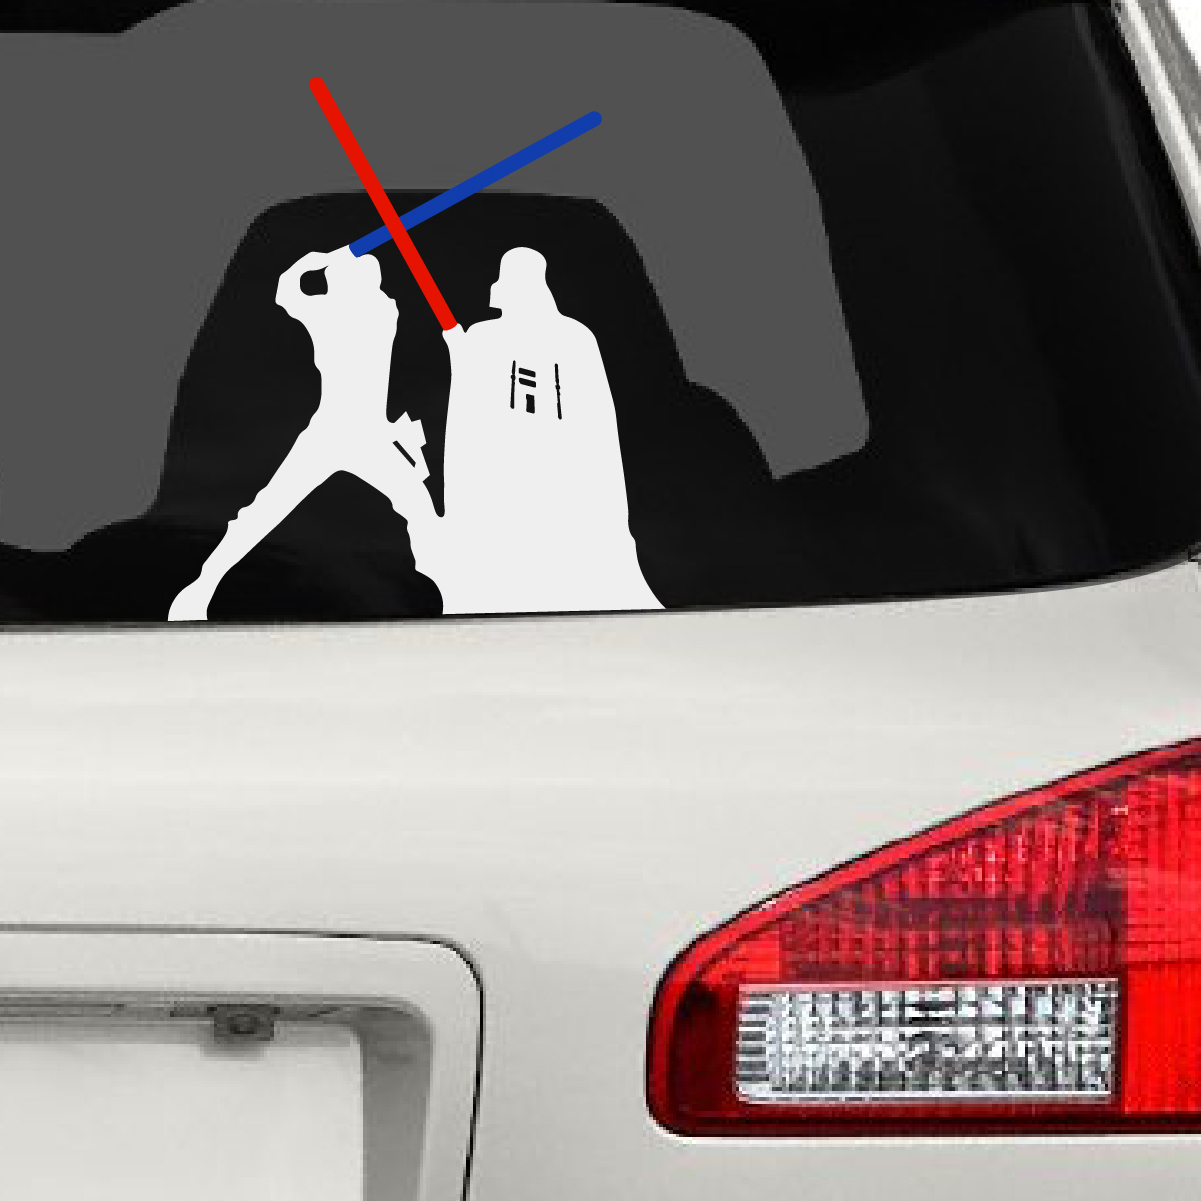 Darth Vader  Luke Skywalker Fight Car Decal The Decal Guru - How to make your own car decals at home